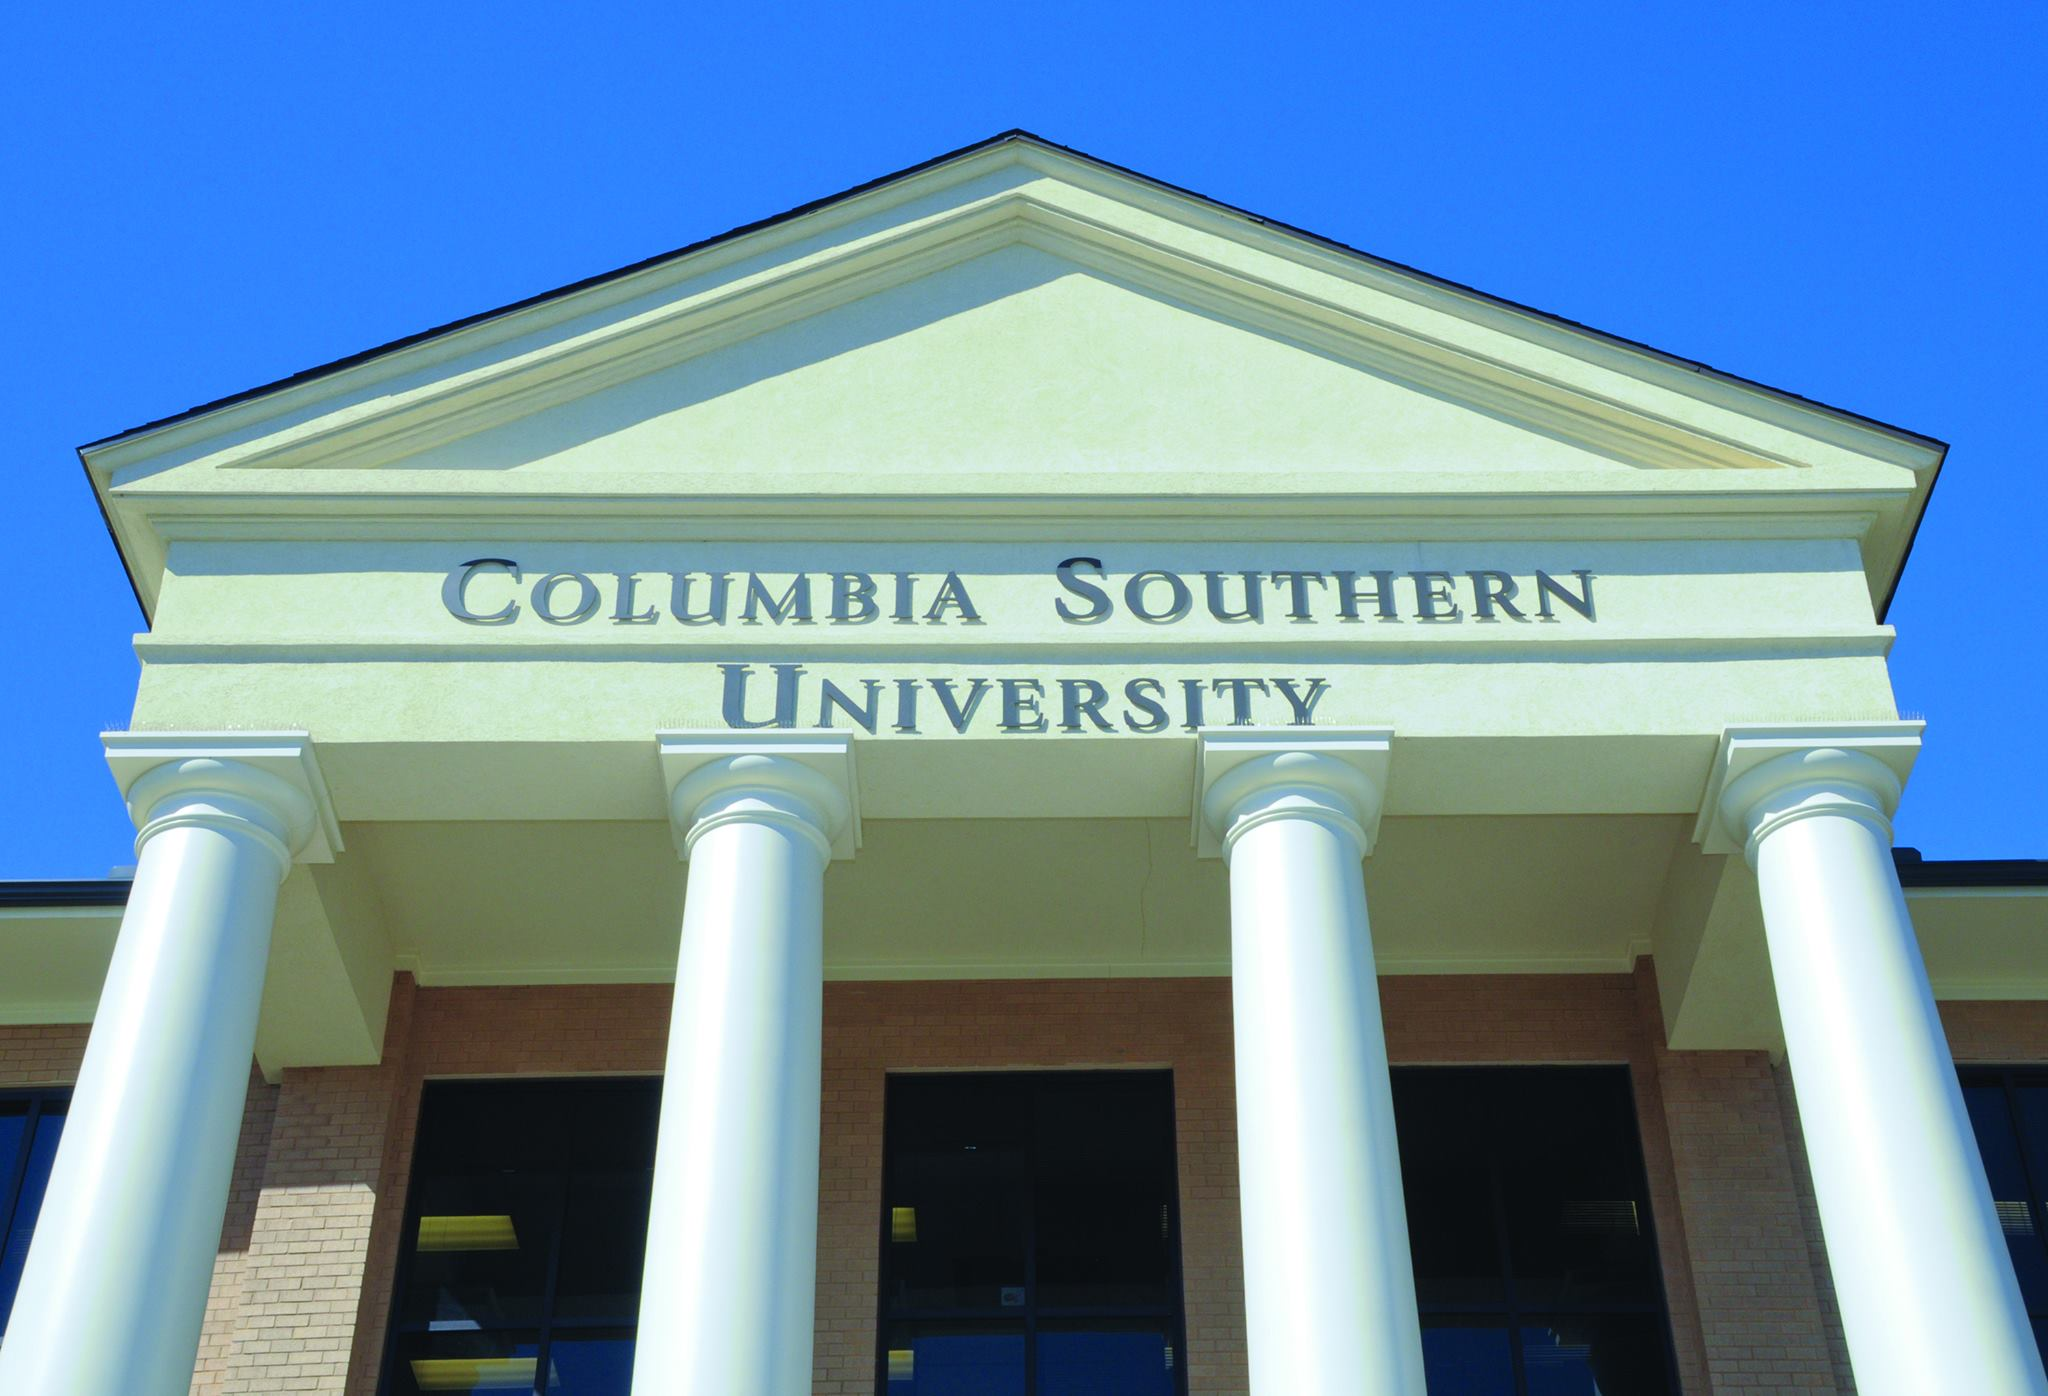 columbia southern university Fir 4311, fire prevention and code enforcement 3 if you do not have these building construction types or occupancies in your area, an internet search is acceptable.